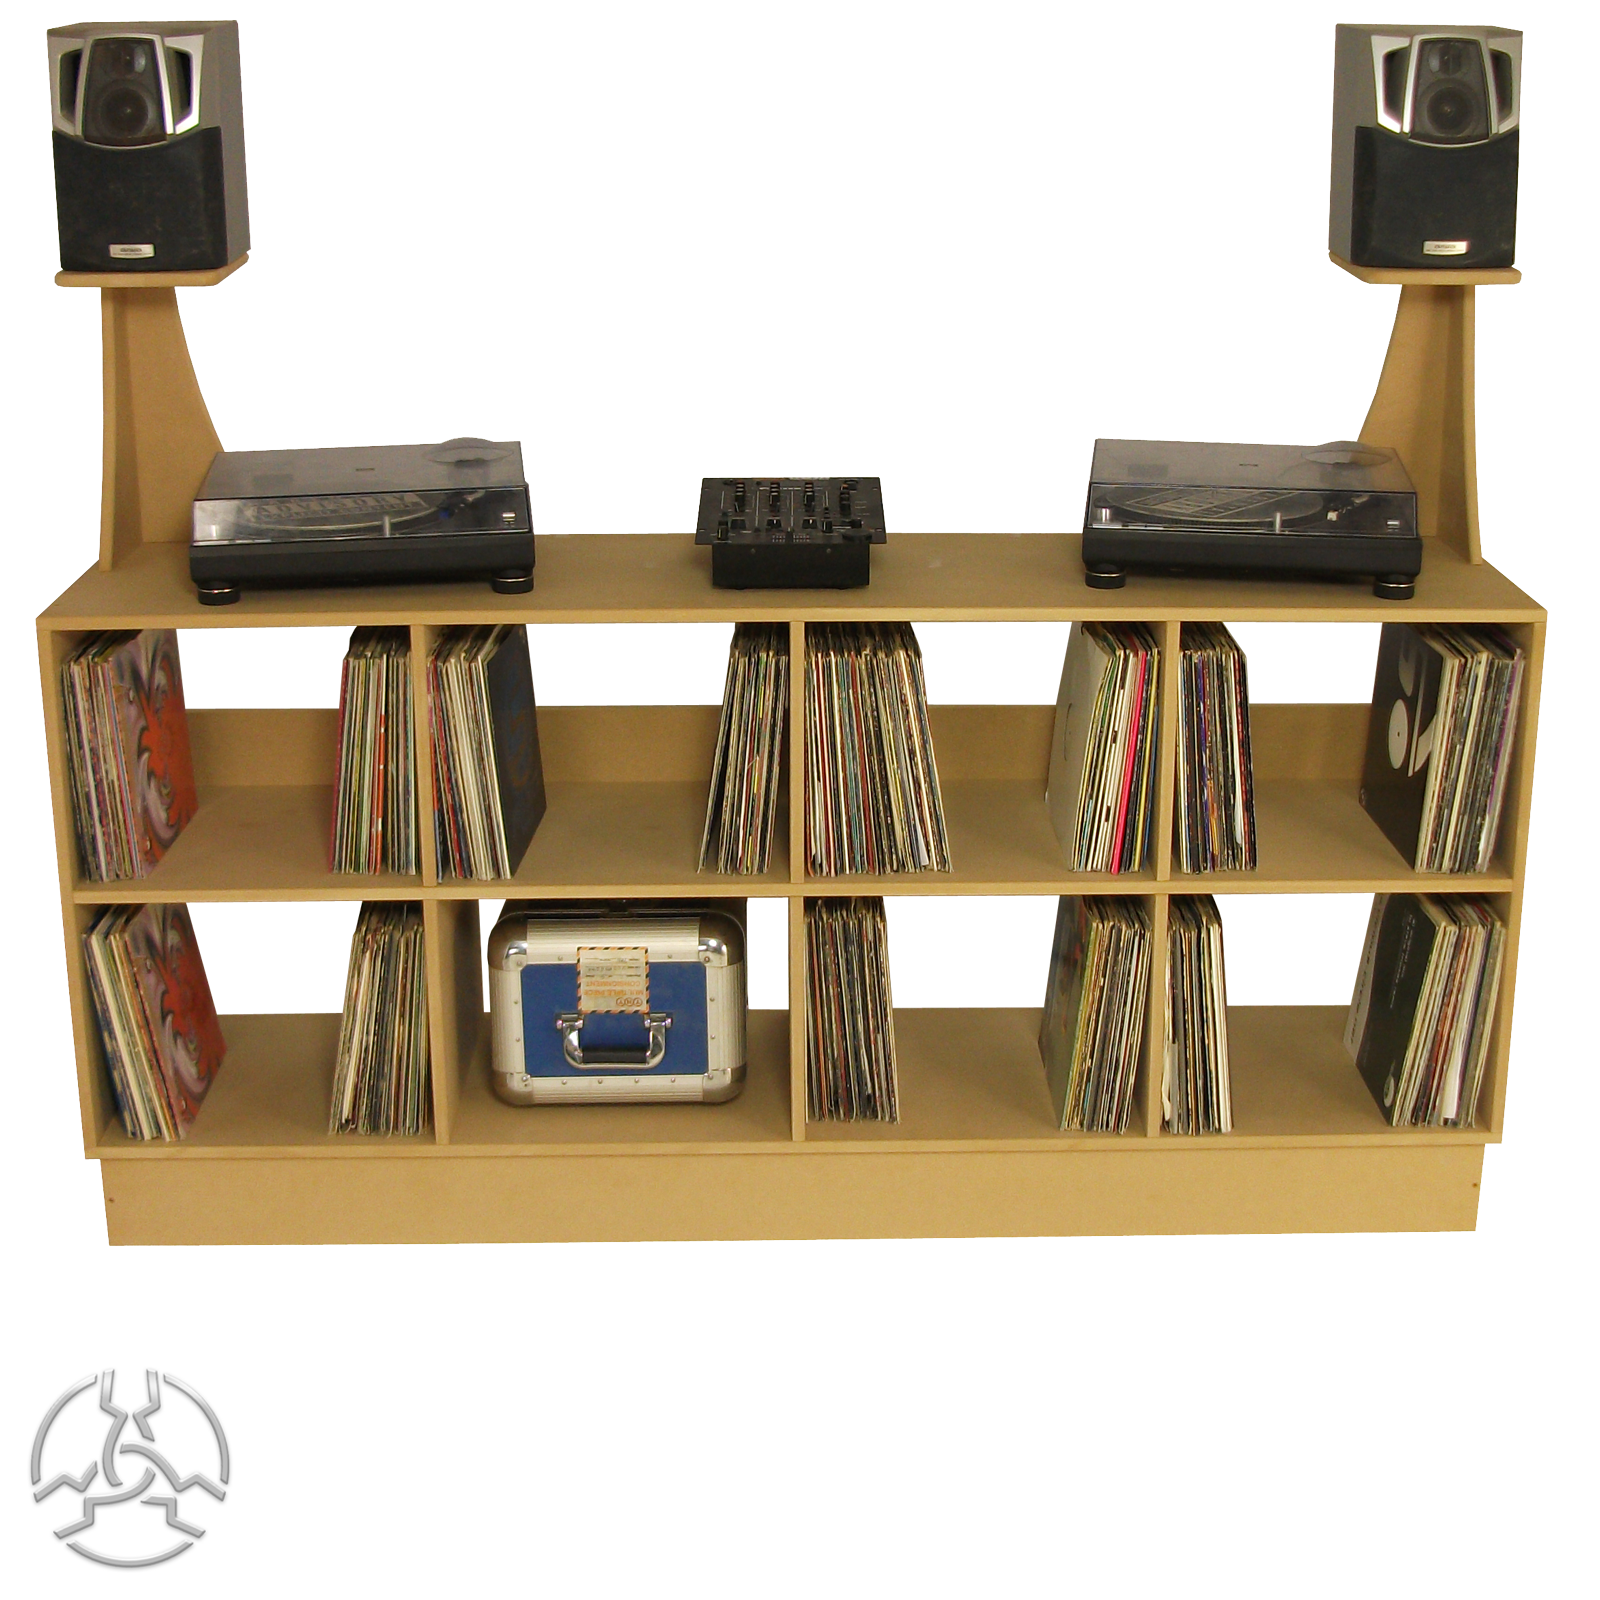 DJ Deck Stand - DS2000: Special Offer - Add Speaker Stands for only £10 on the asking price